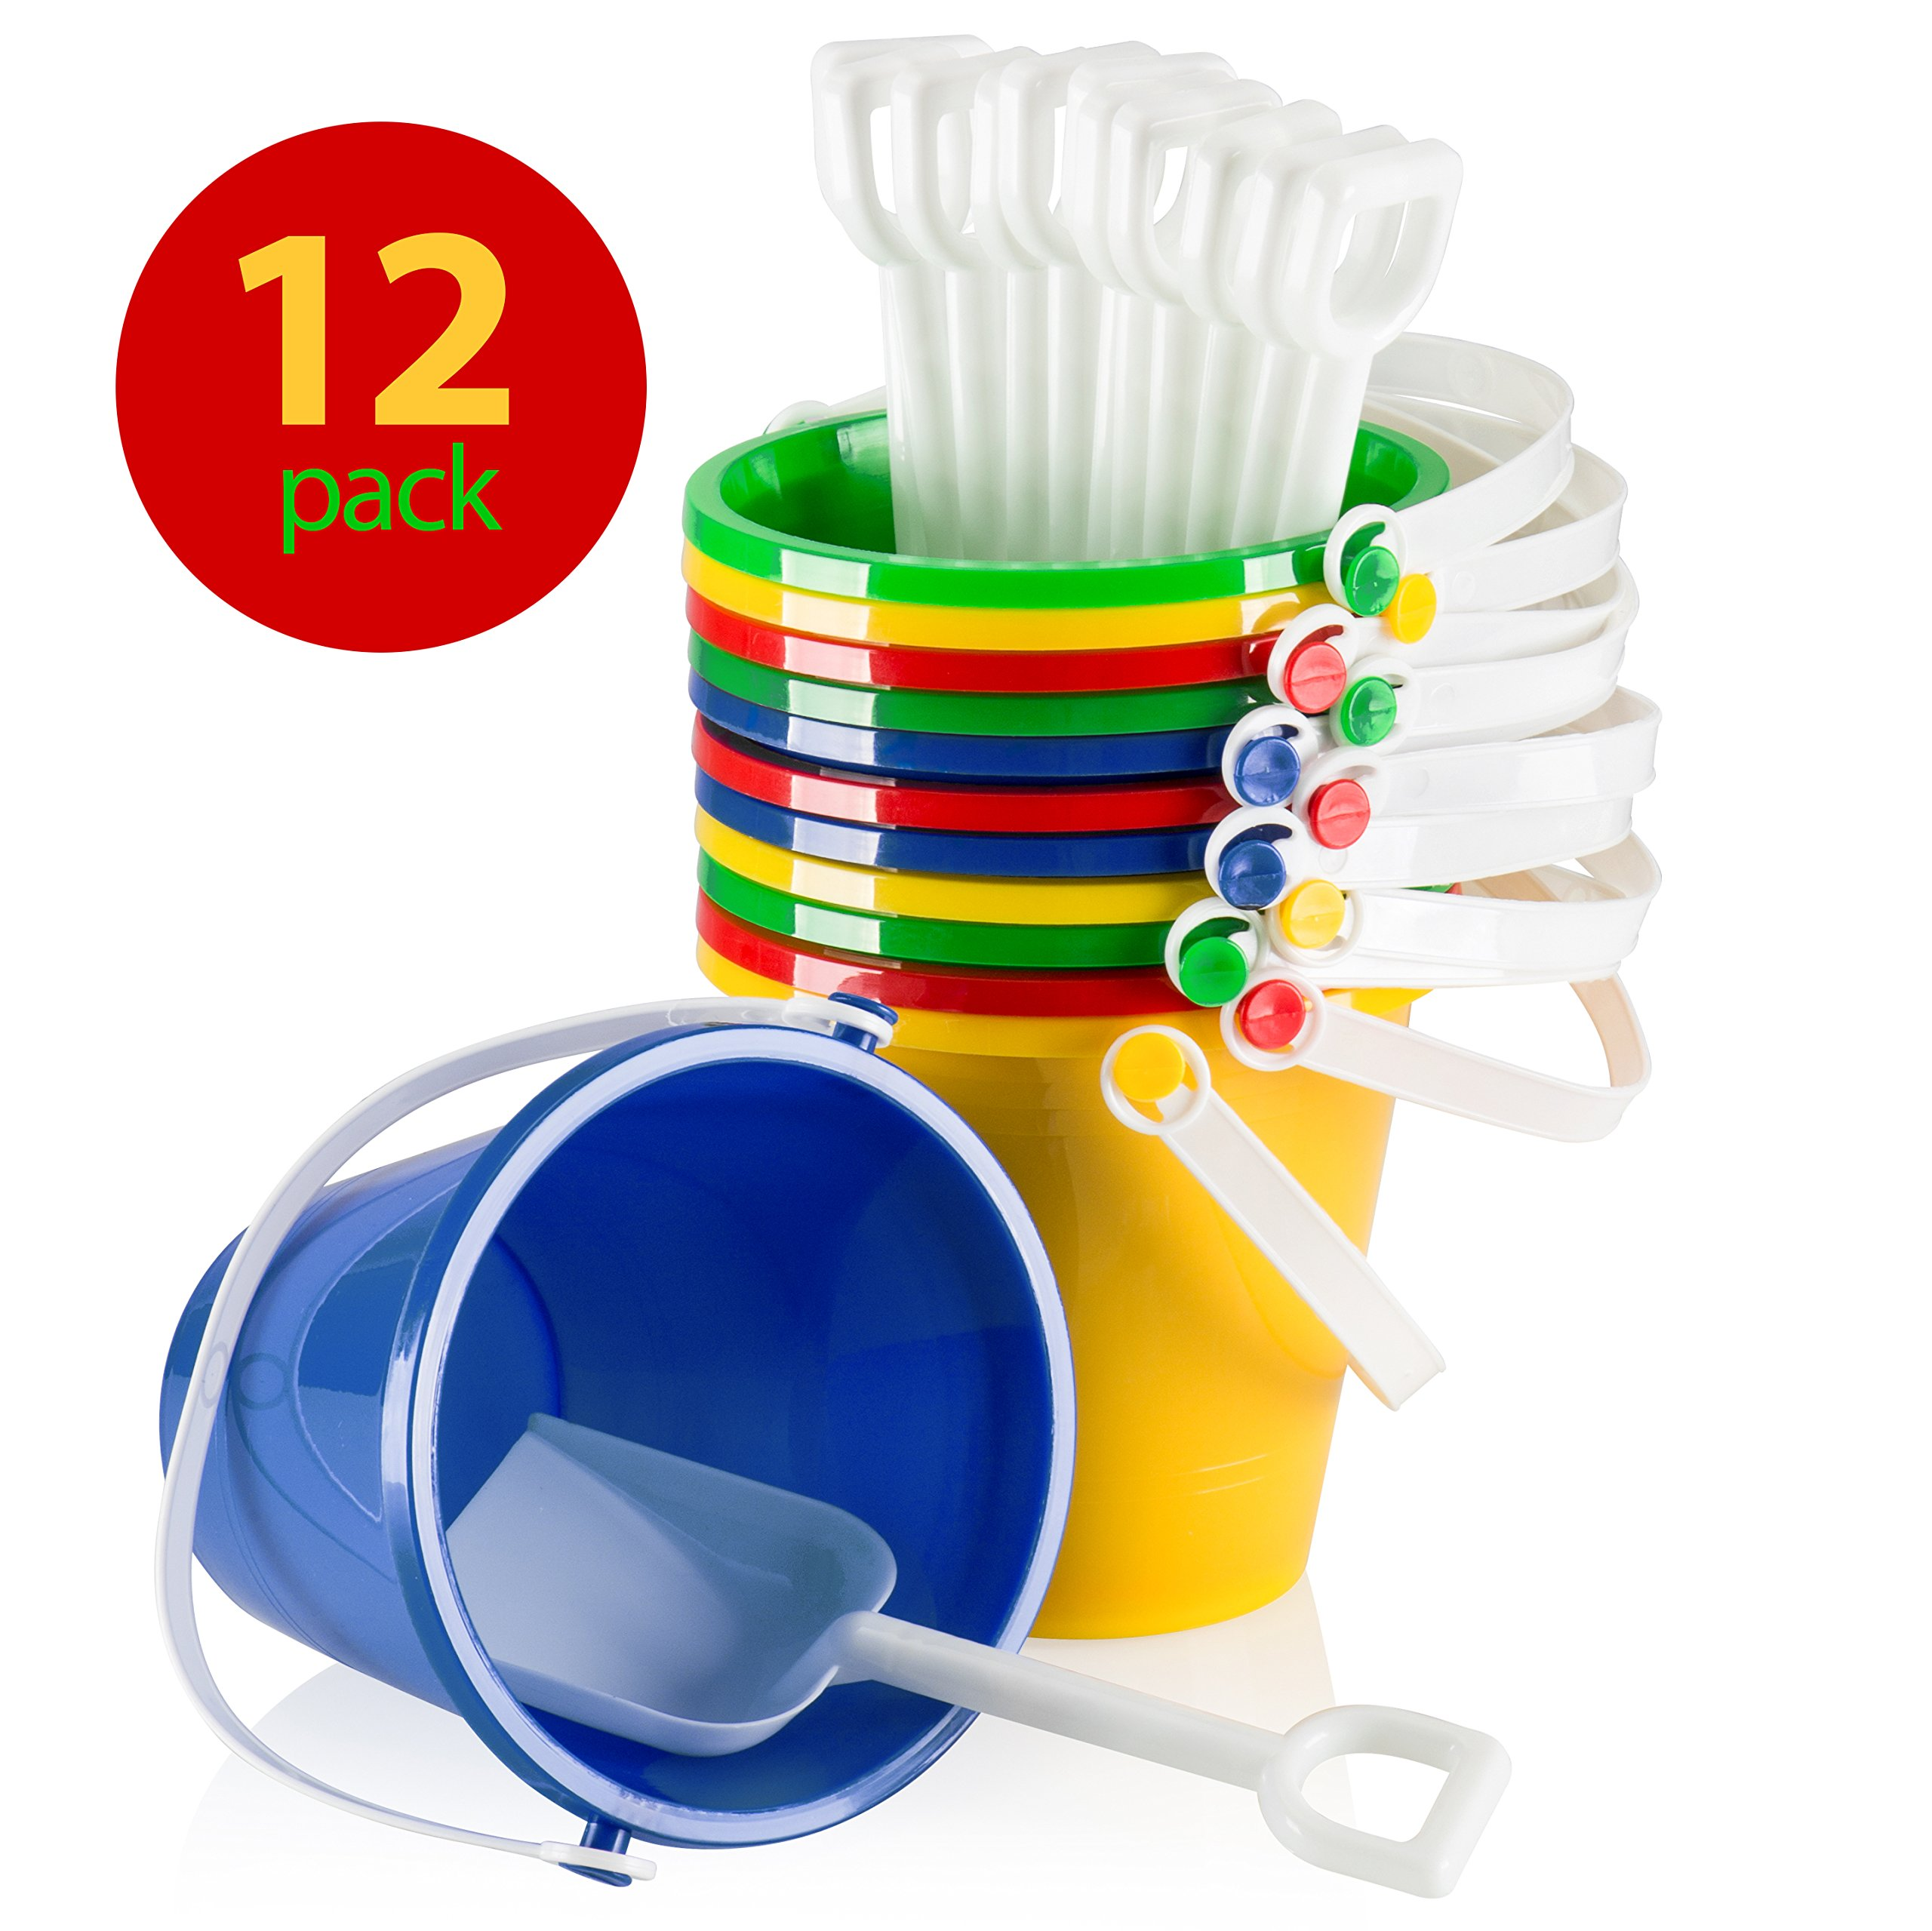 Top Race 5'' Inch Beach Pails Sand Buckets and Sand Shovels (Pack of 12)